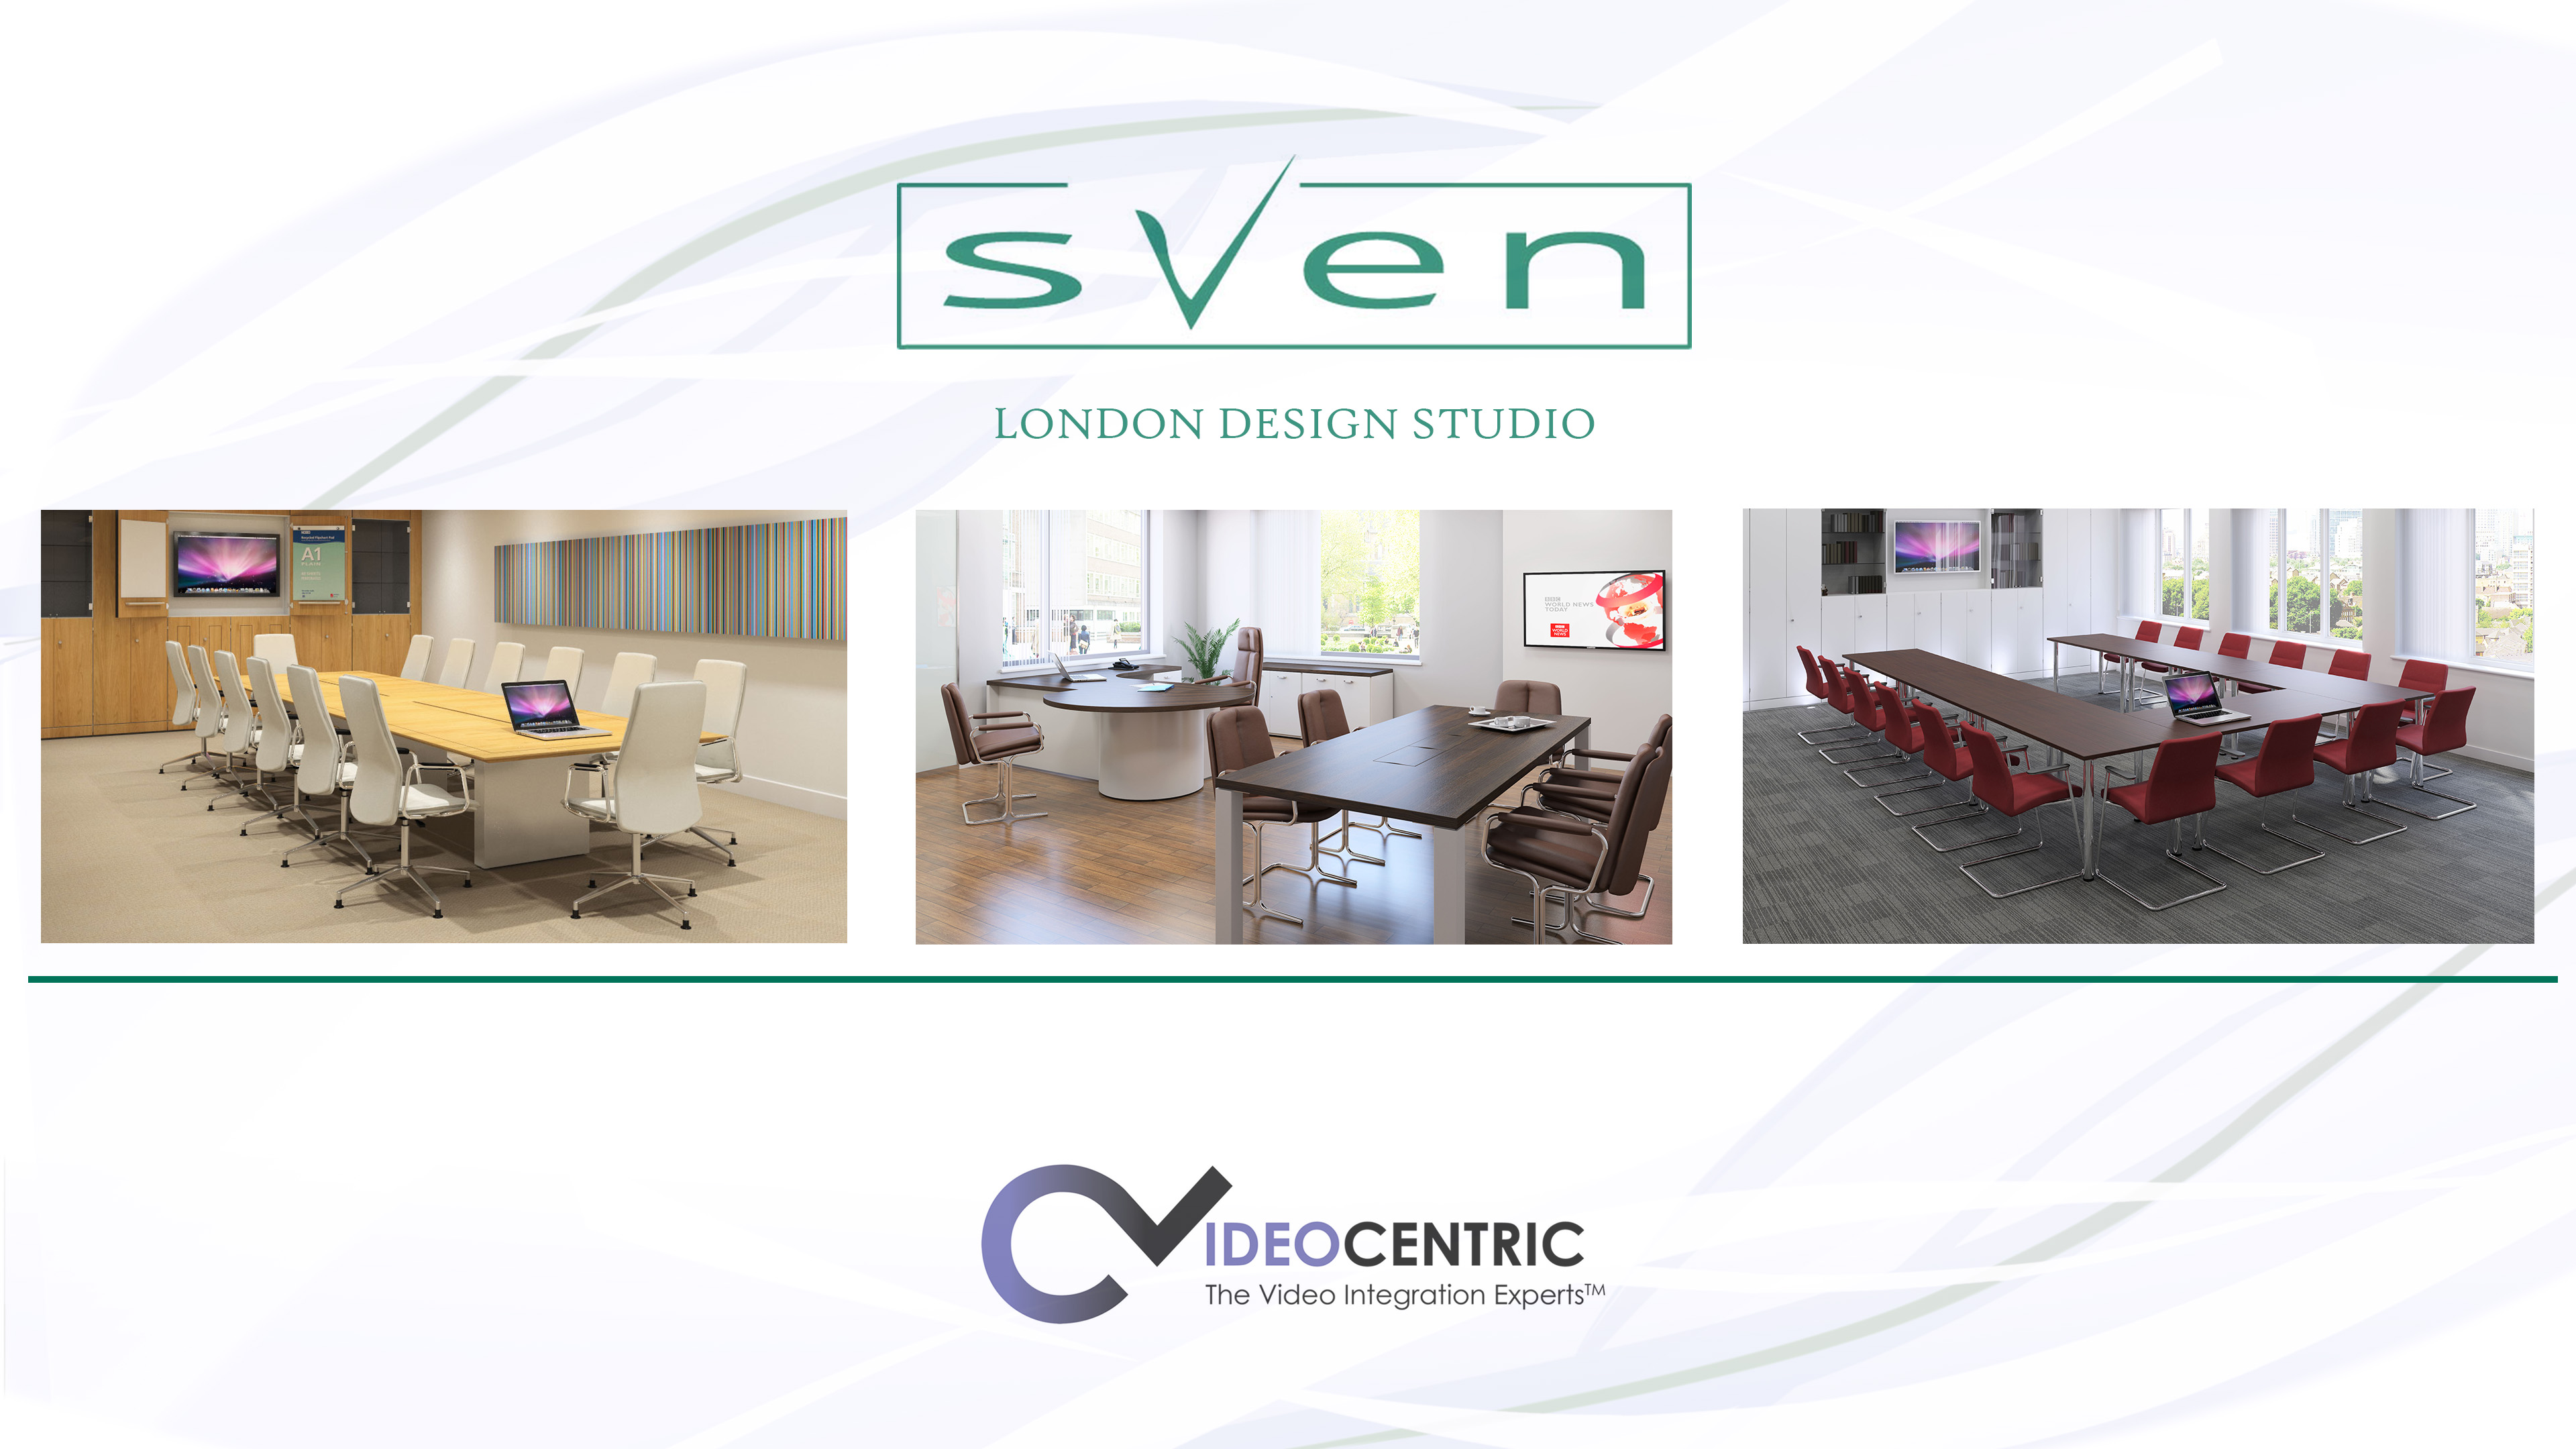 Sven and VideoCentric logo and Sven furniture images